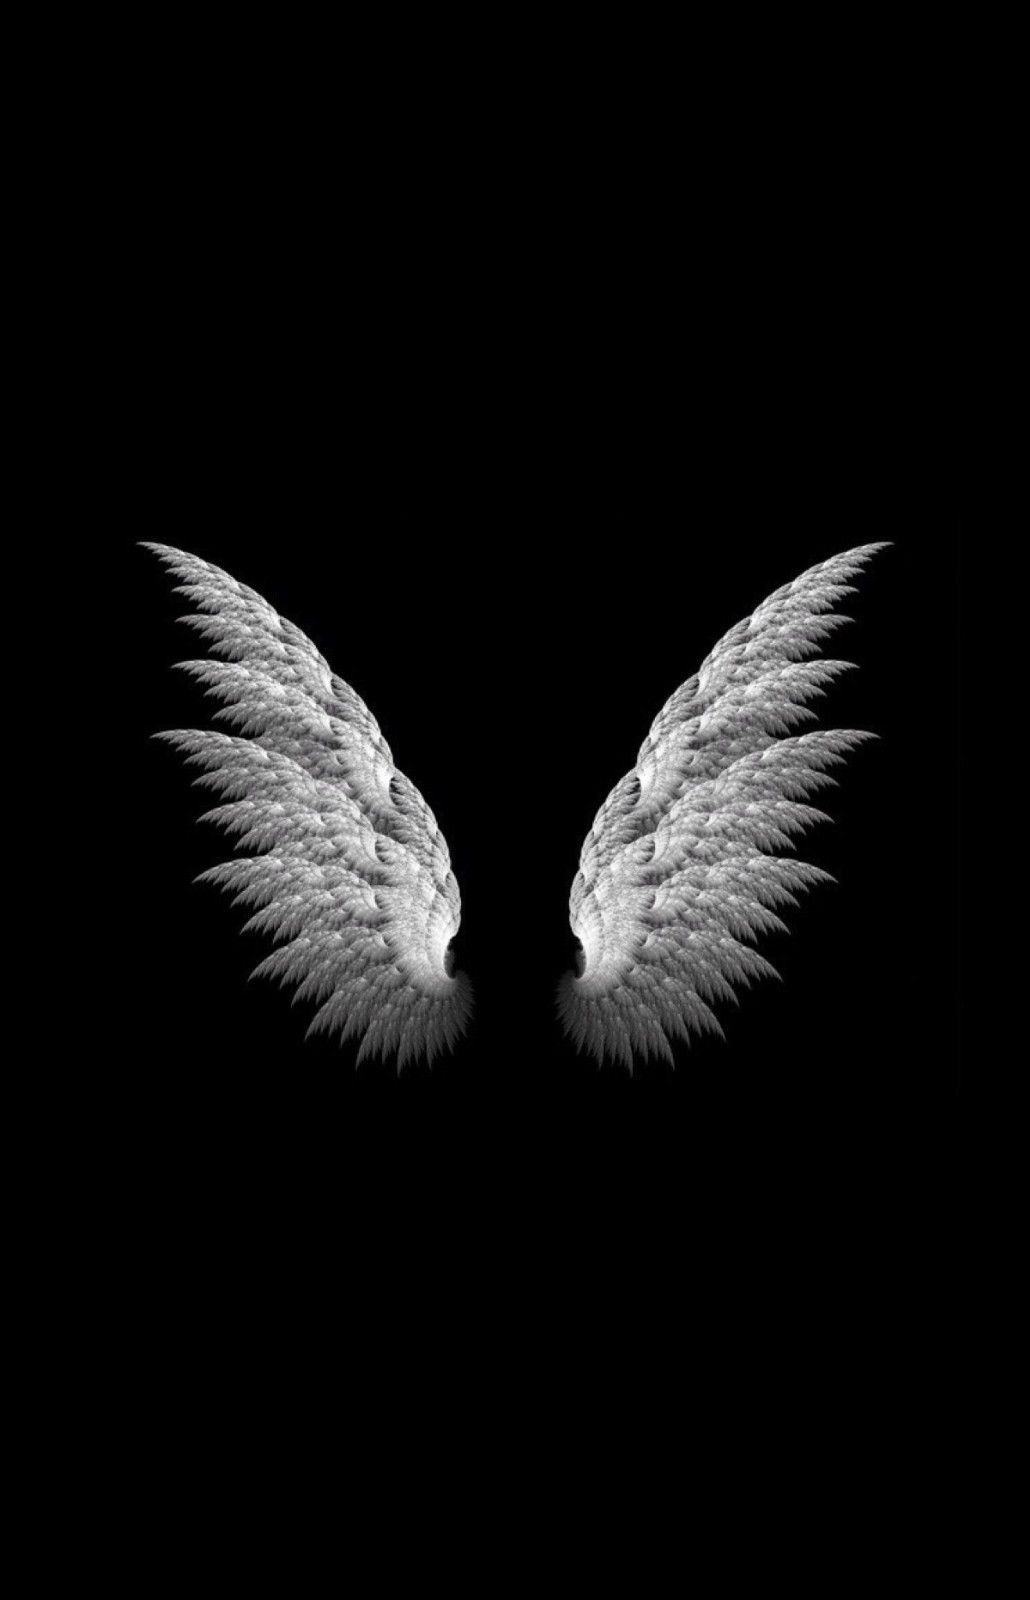 Framed print white angel wings on a black background picture poster art